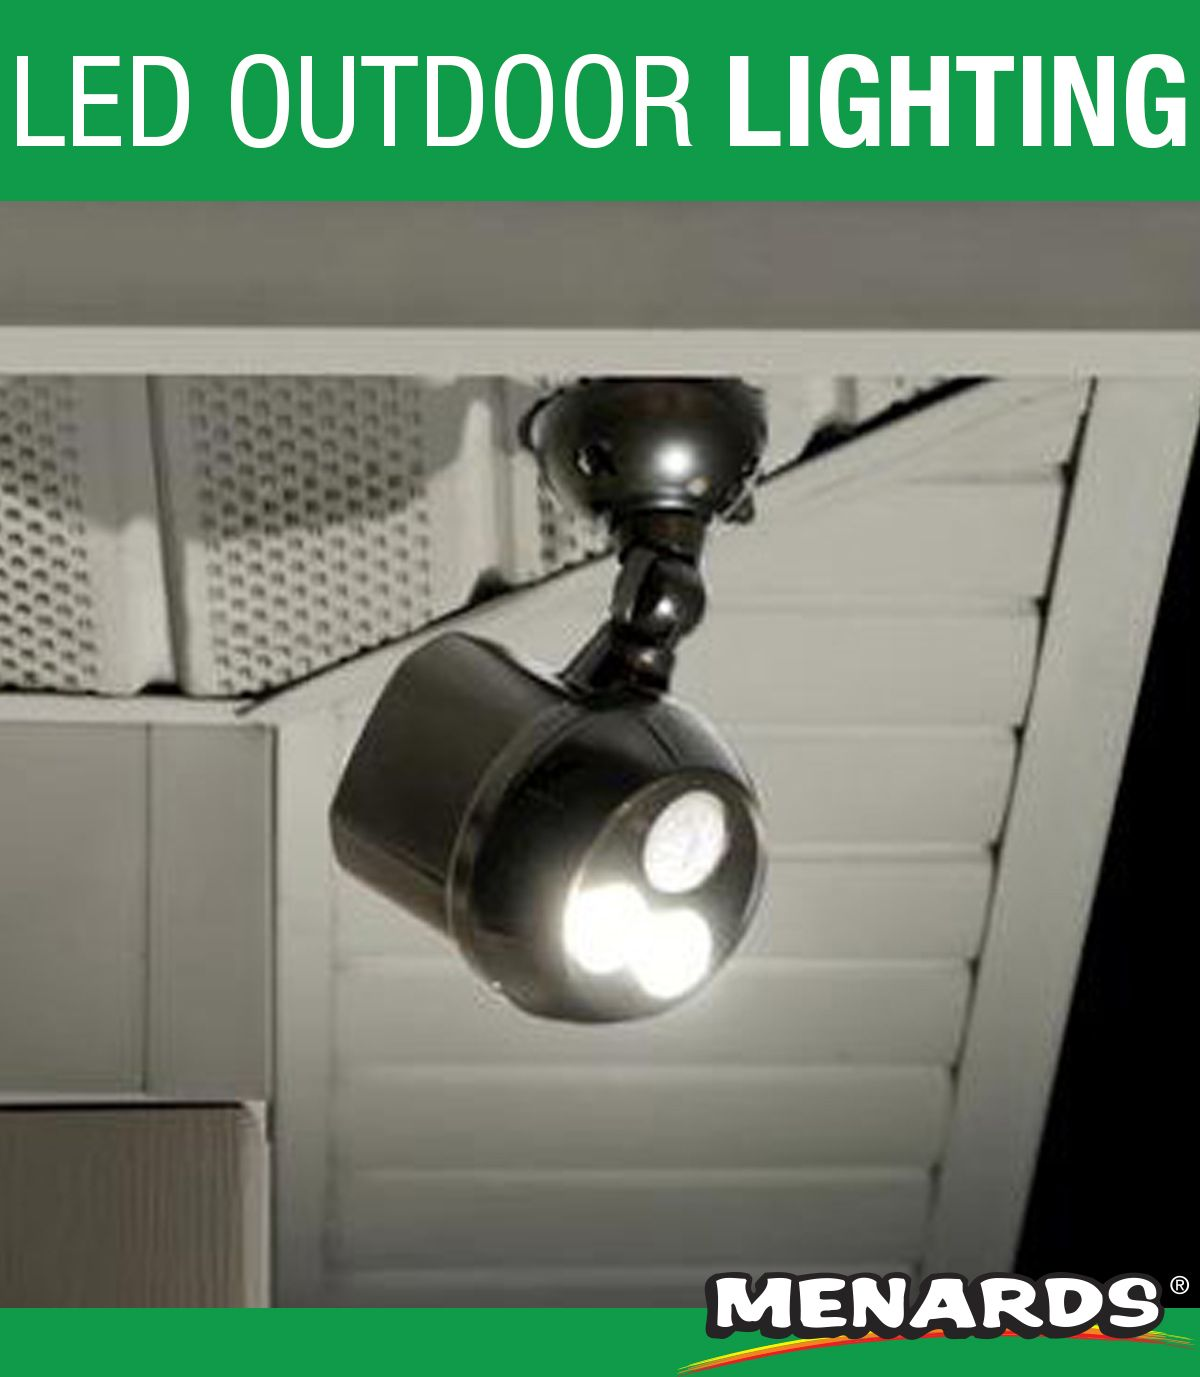 The Mr Beams Ultra Bright Led Spotlight Is One Of Brightest Battery Operated